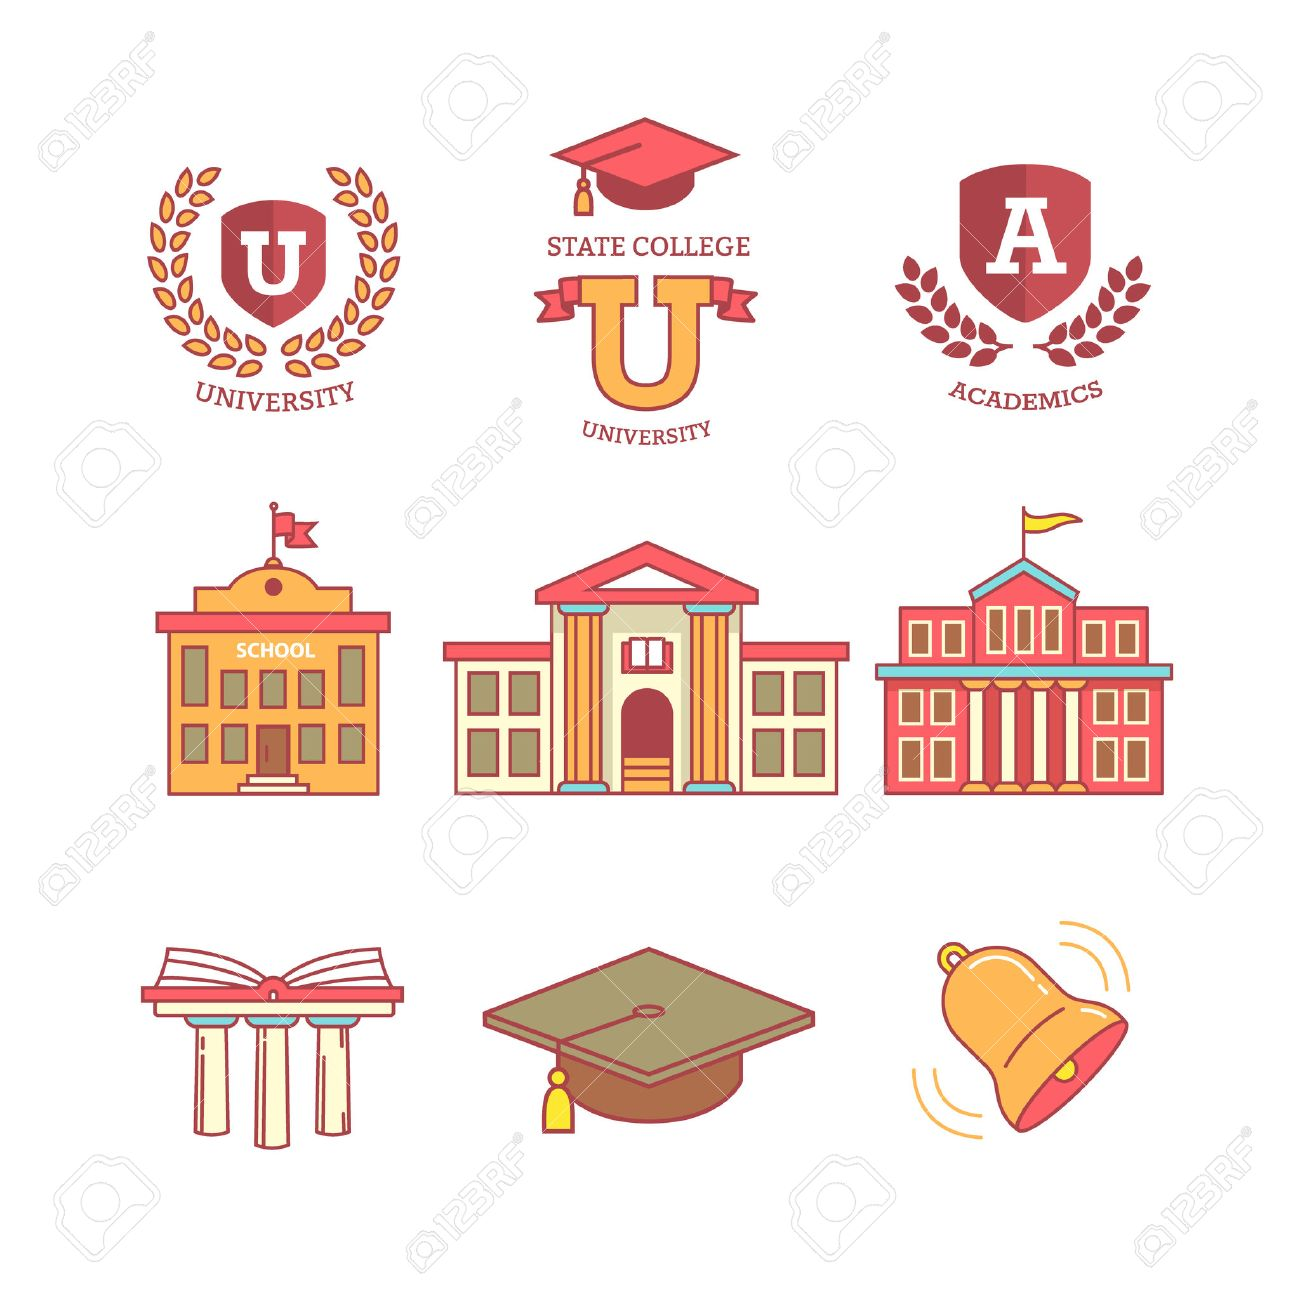 Mortar board, education, school, academy, college and university, library emblems and buildings. Thin line icons set. Modern flat style symbols isolated on white for infographics or web use. - 47050342